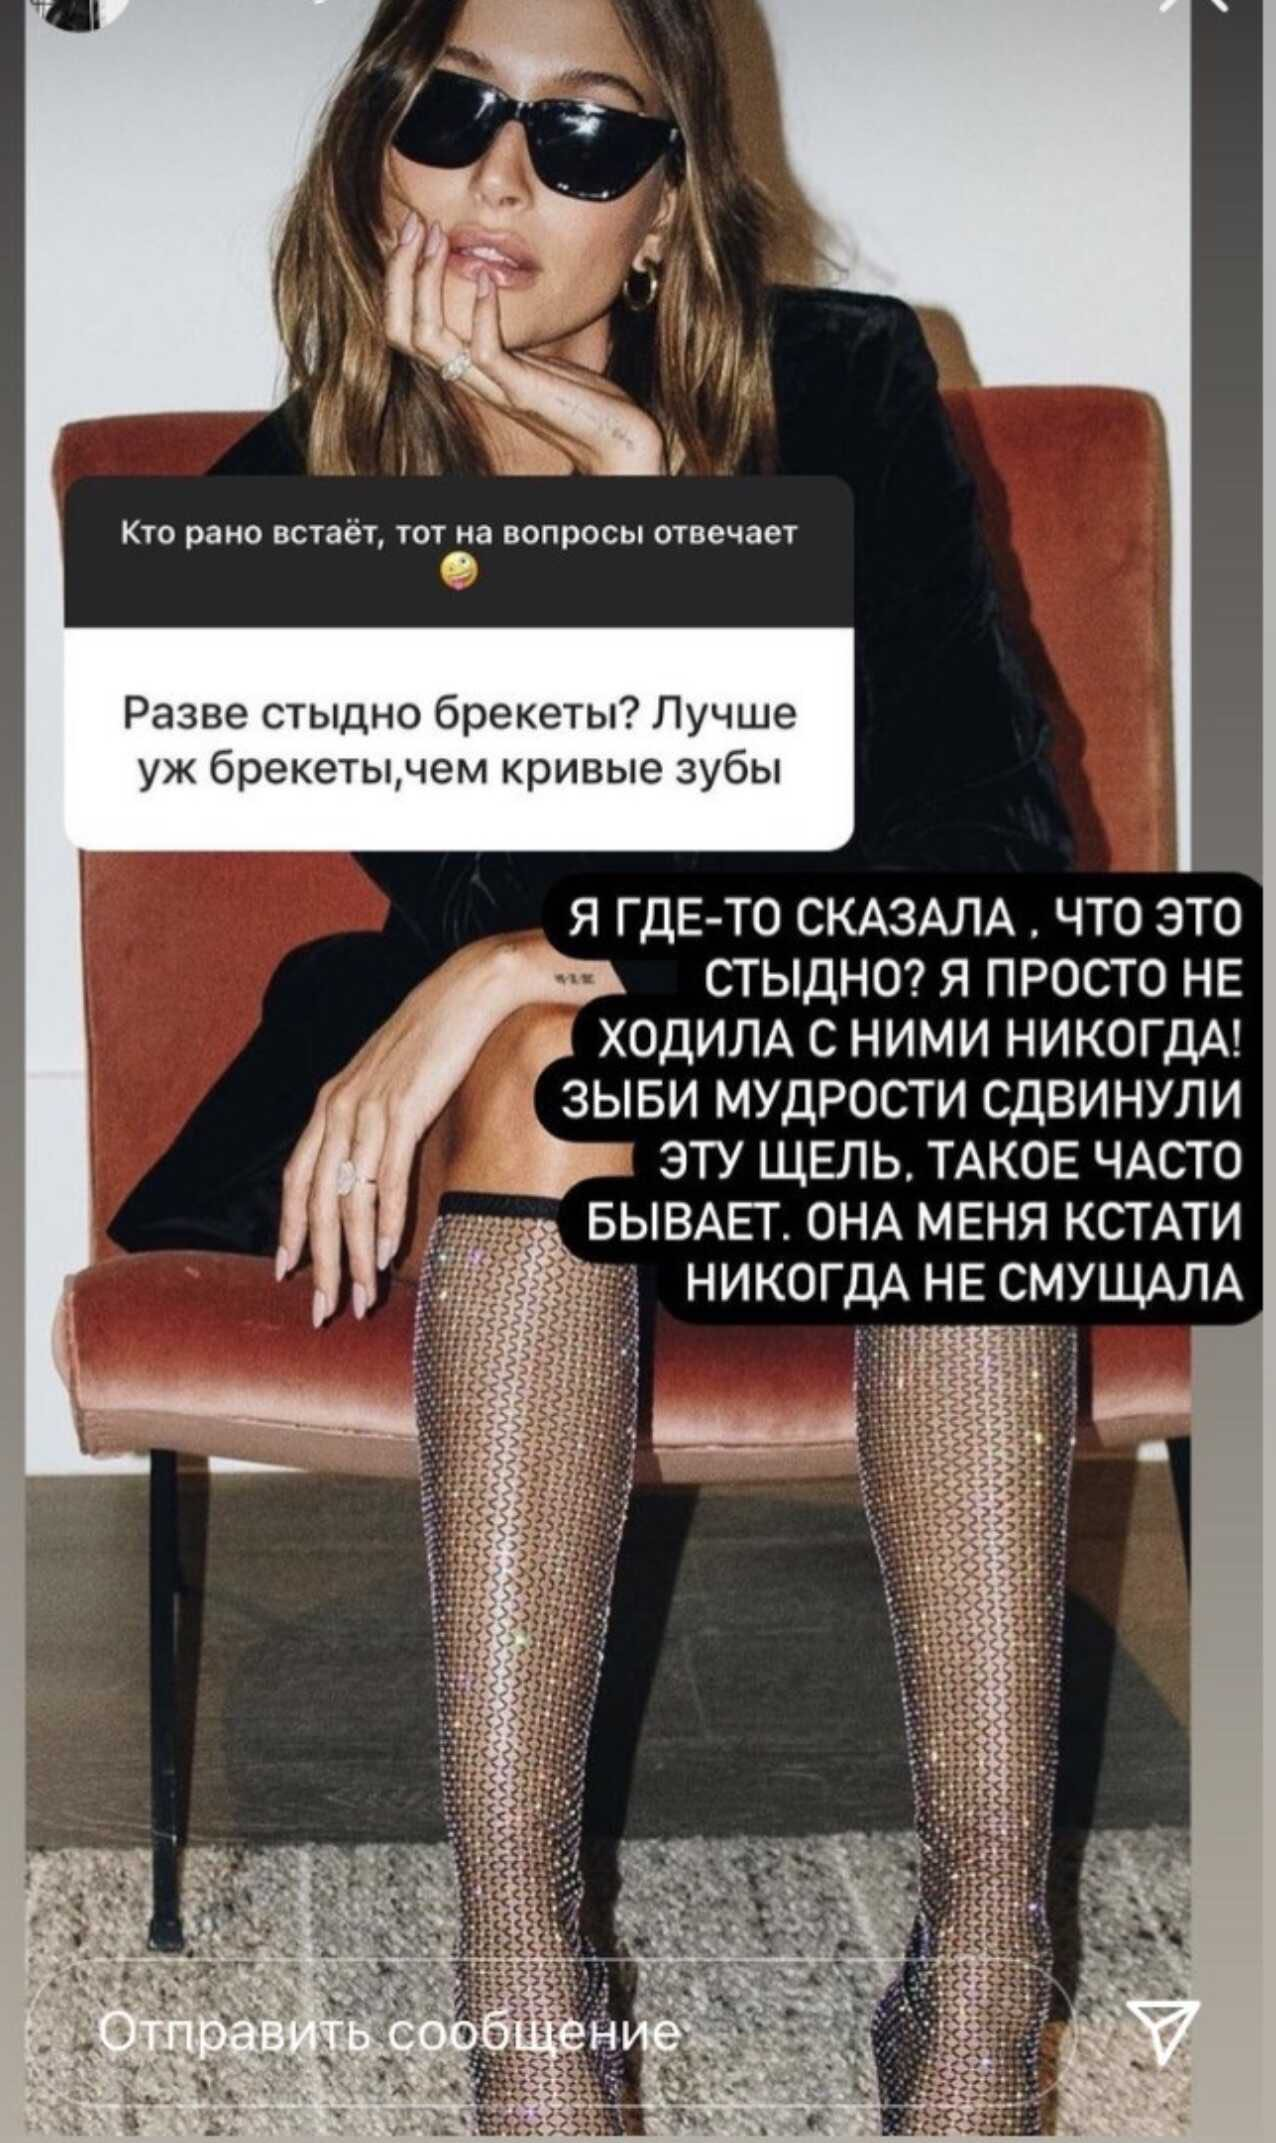 Ksenia Borodina explained where her large gap between her front teeth disappeared